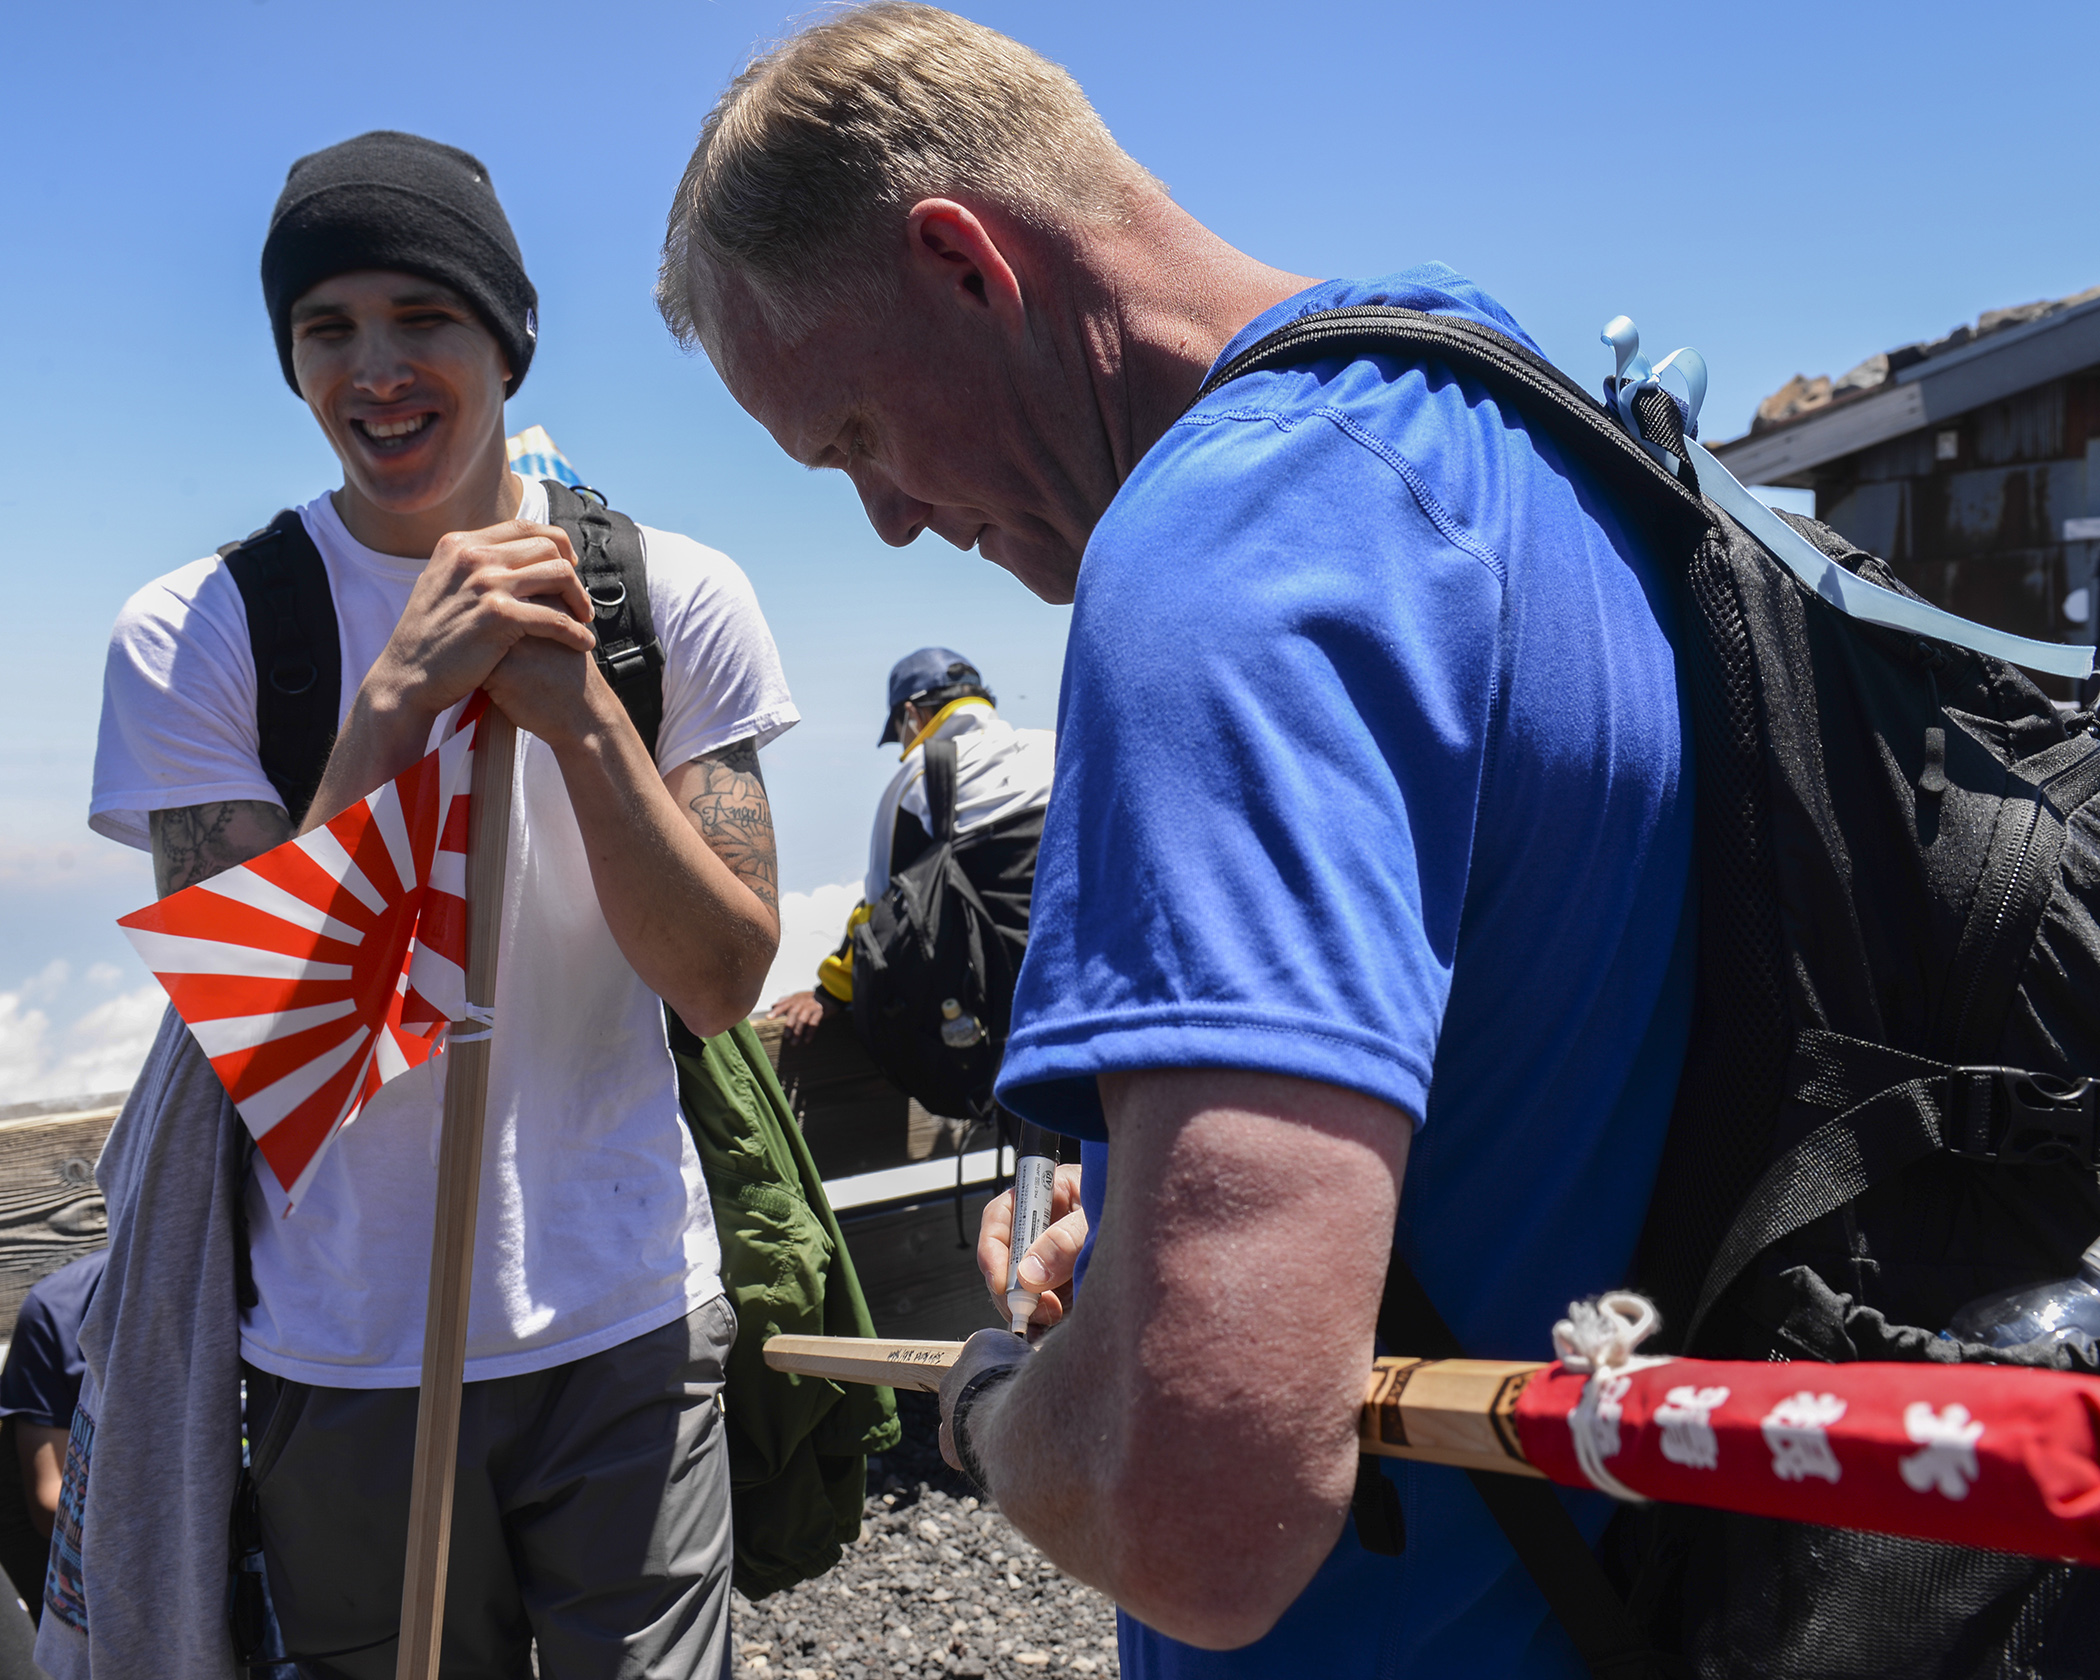 Chief Master Sergeant of the Air Force James A. Cody signs a walking stick for an Airman at the summit of Mount Fuji, Japan, July 11, 2015. During his trip to Japan, Cody extended an opportunity to 85 Yokota personnel to join him on a resiliency day trip to the summit of Mount Fuji. (U.S. Air Force photo by Airman 1st Class Elizabeth Baker/Released)